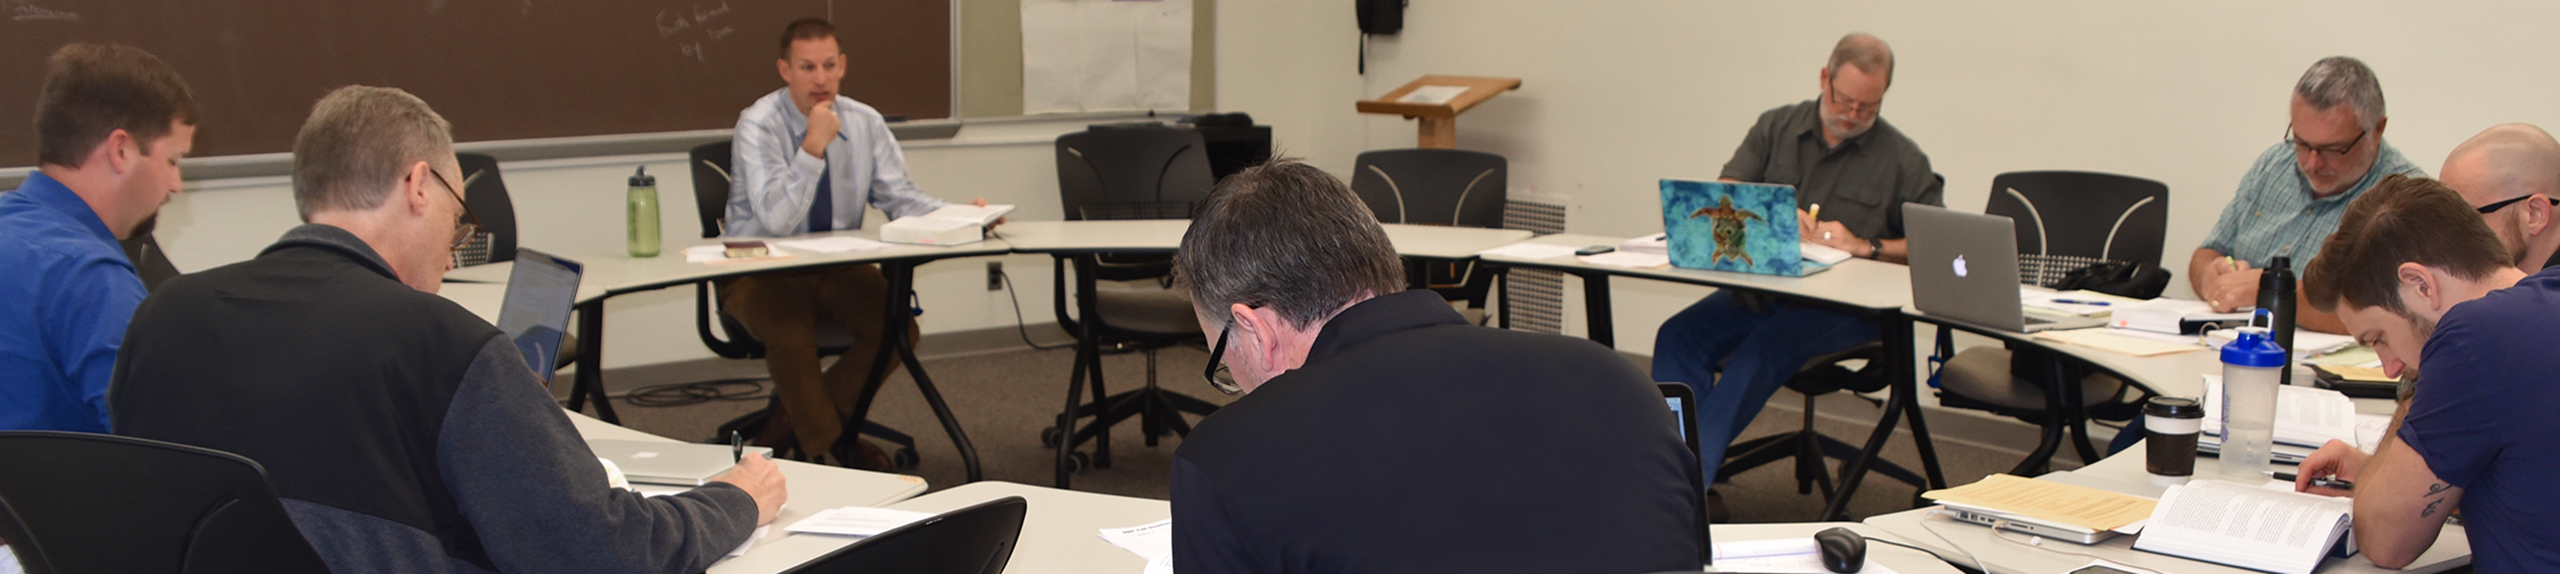 Prepare for pastoral ministry in The Lutheran Church at Concordia Seminary